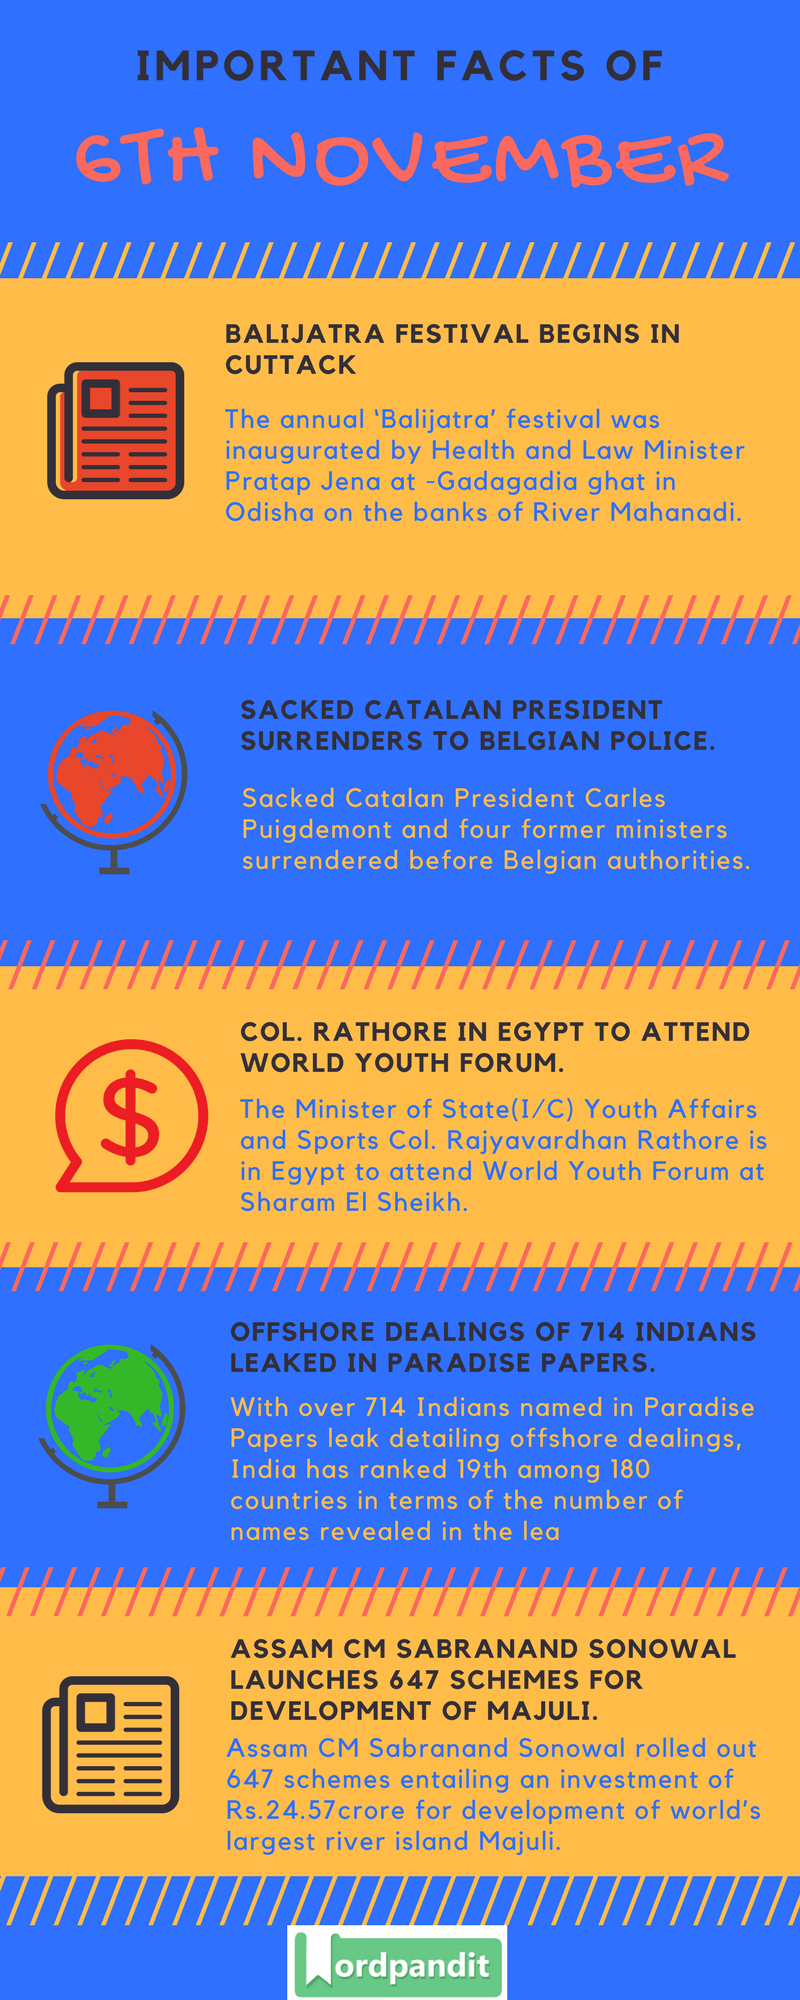 Daily-Current-Affairs-6-november-2017-Current-Affairs-Quiz-october-24-2017-Current-Affairs-Infographic